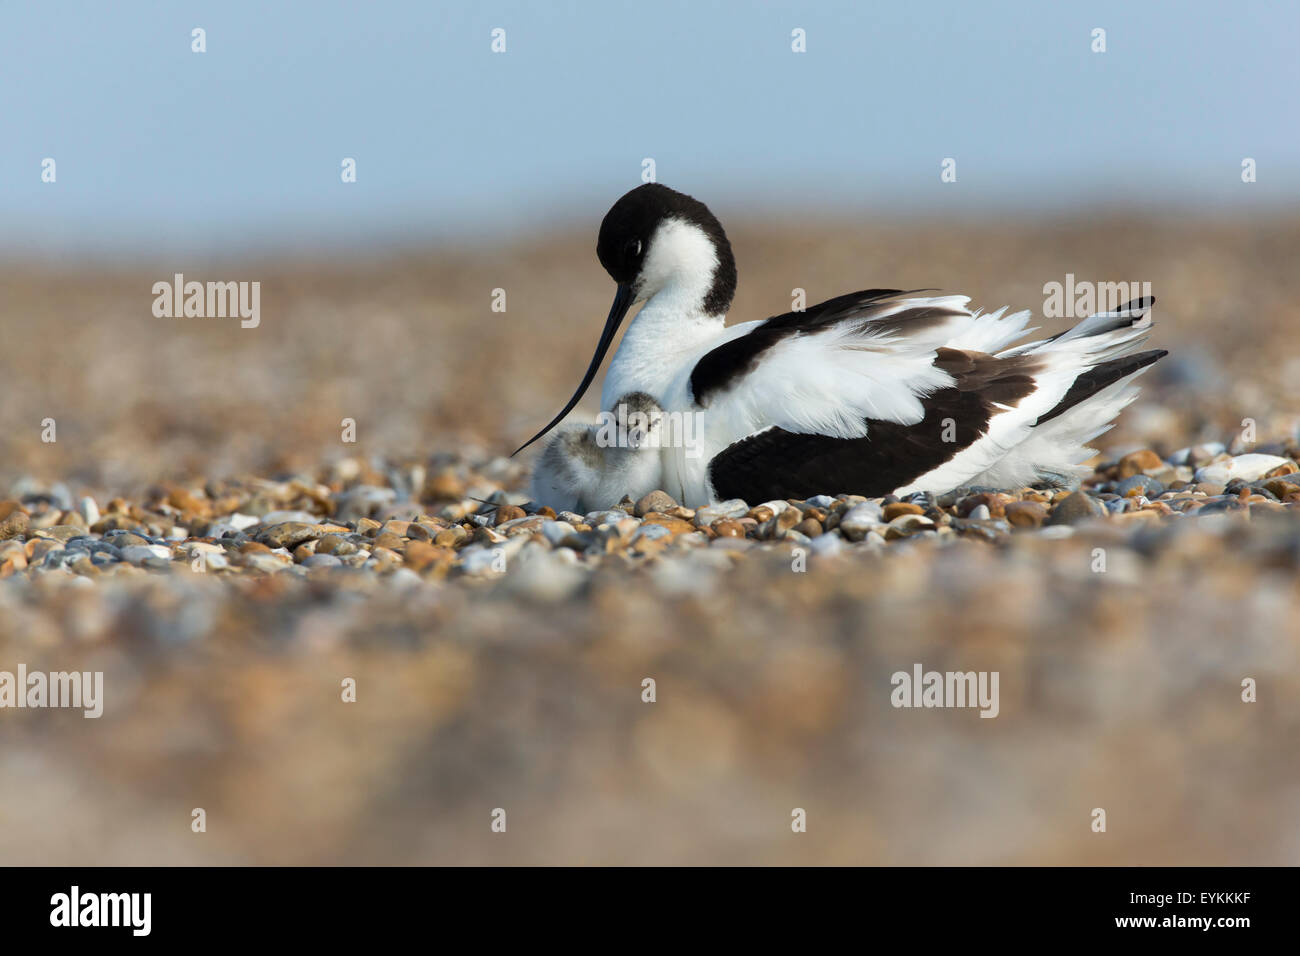 Avocet (Recurvirostra avosetta) protecting its chick on the beach - Stock Image